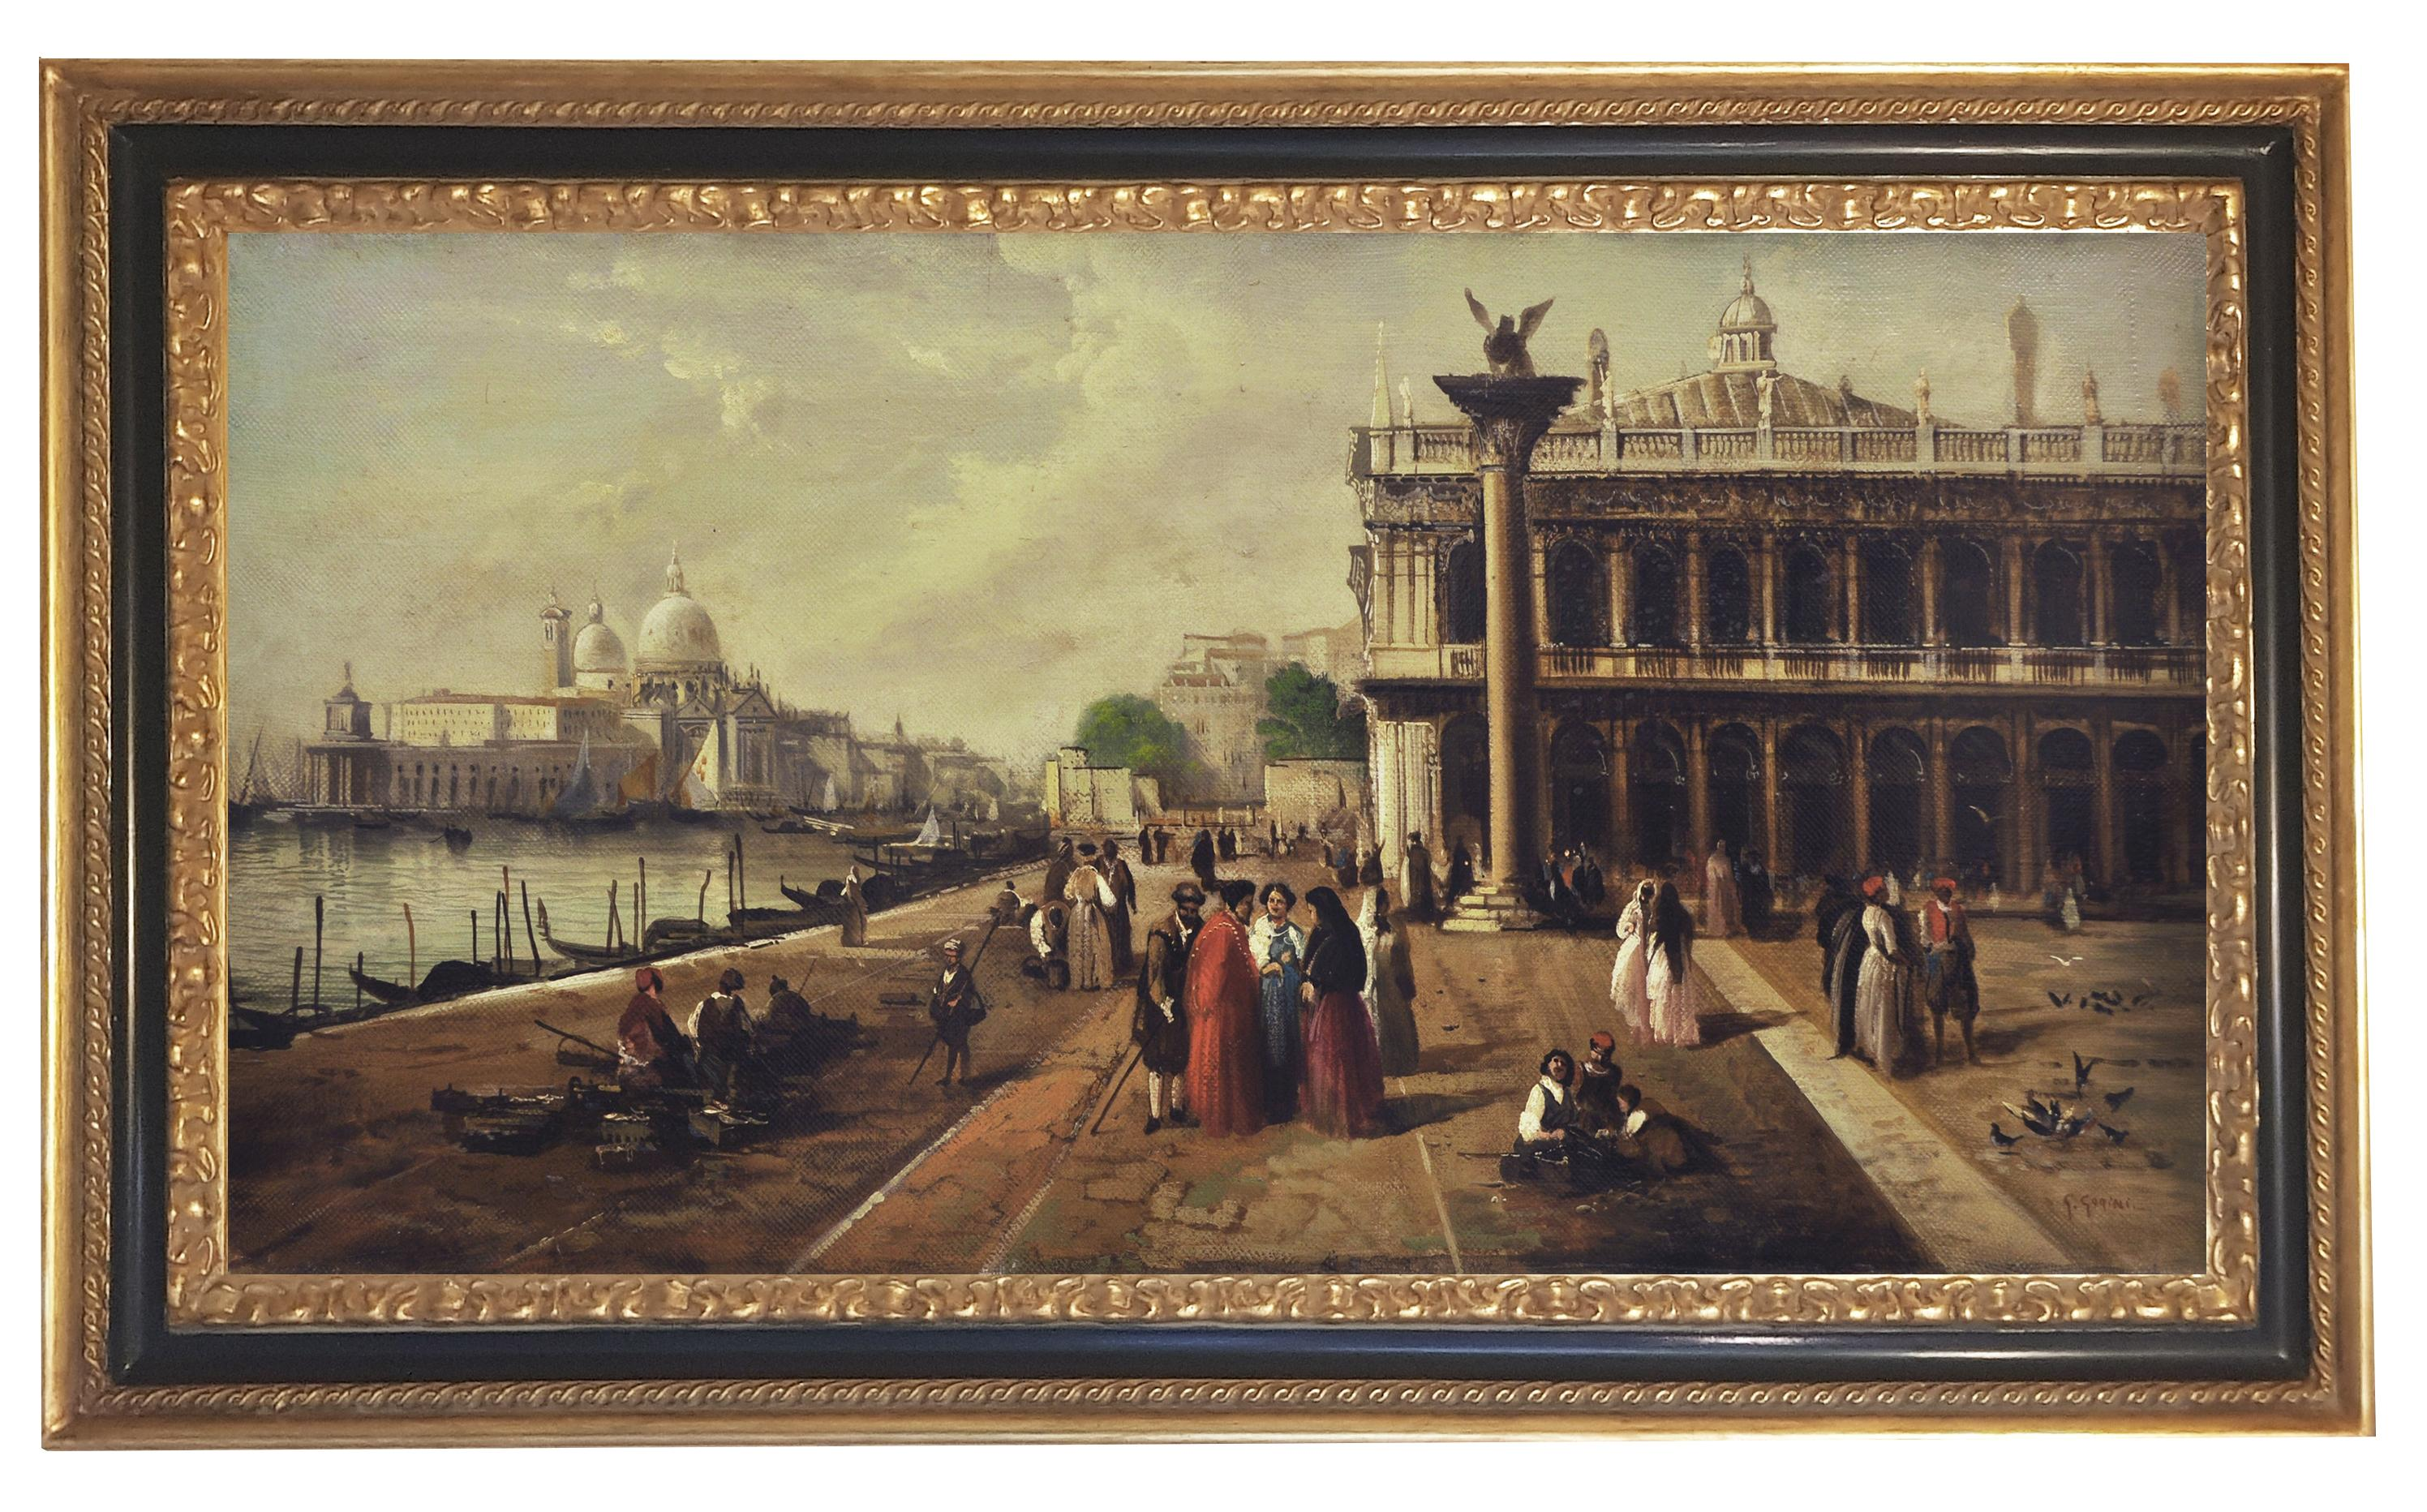 VENICE -In the Manner of Canaletto- Oil On Canvas Italian Landscape Painting